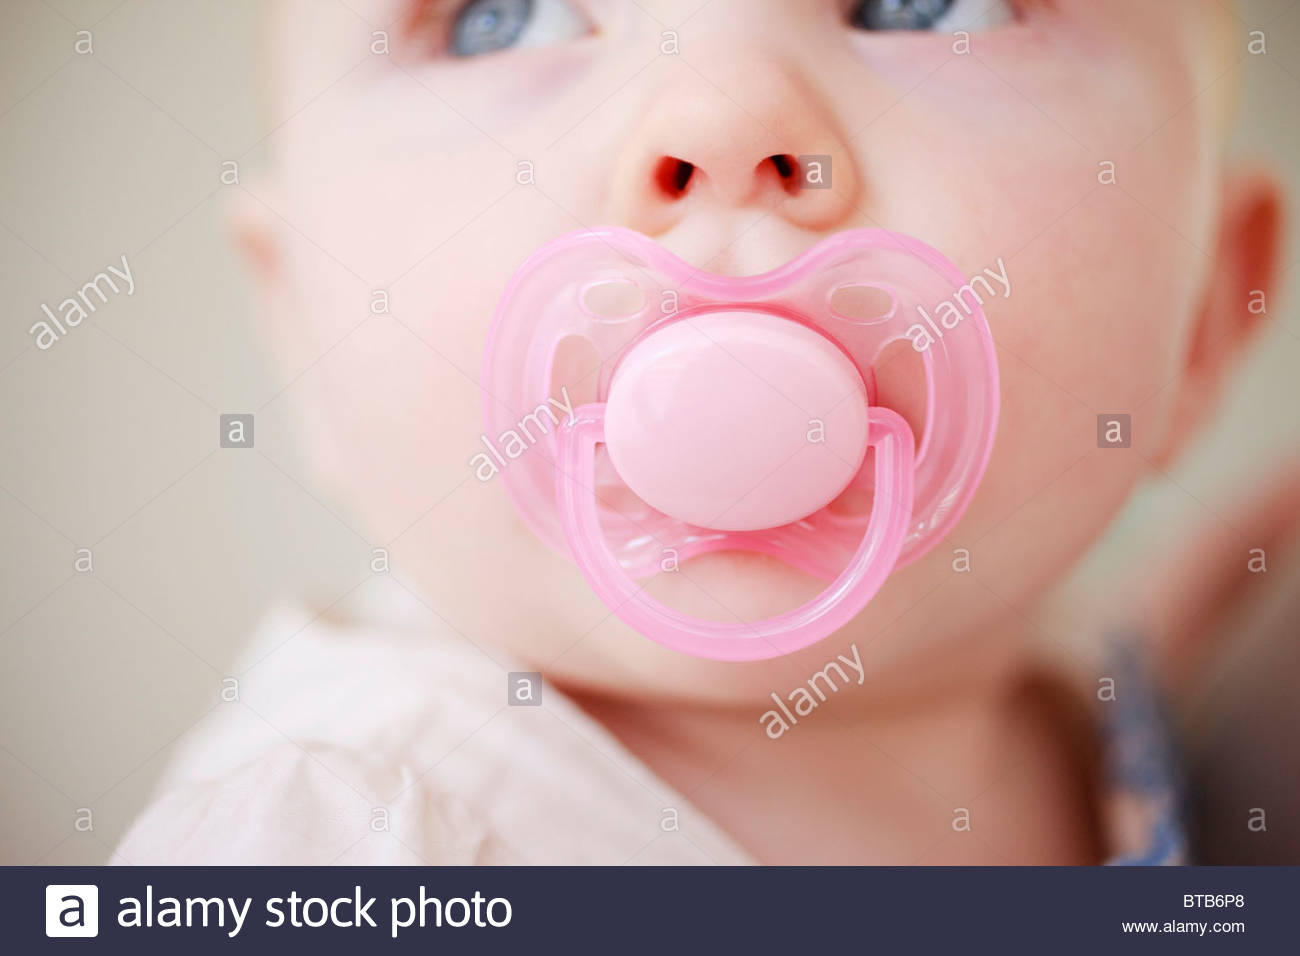 Close up of baby with pink pacifier Photo Stock